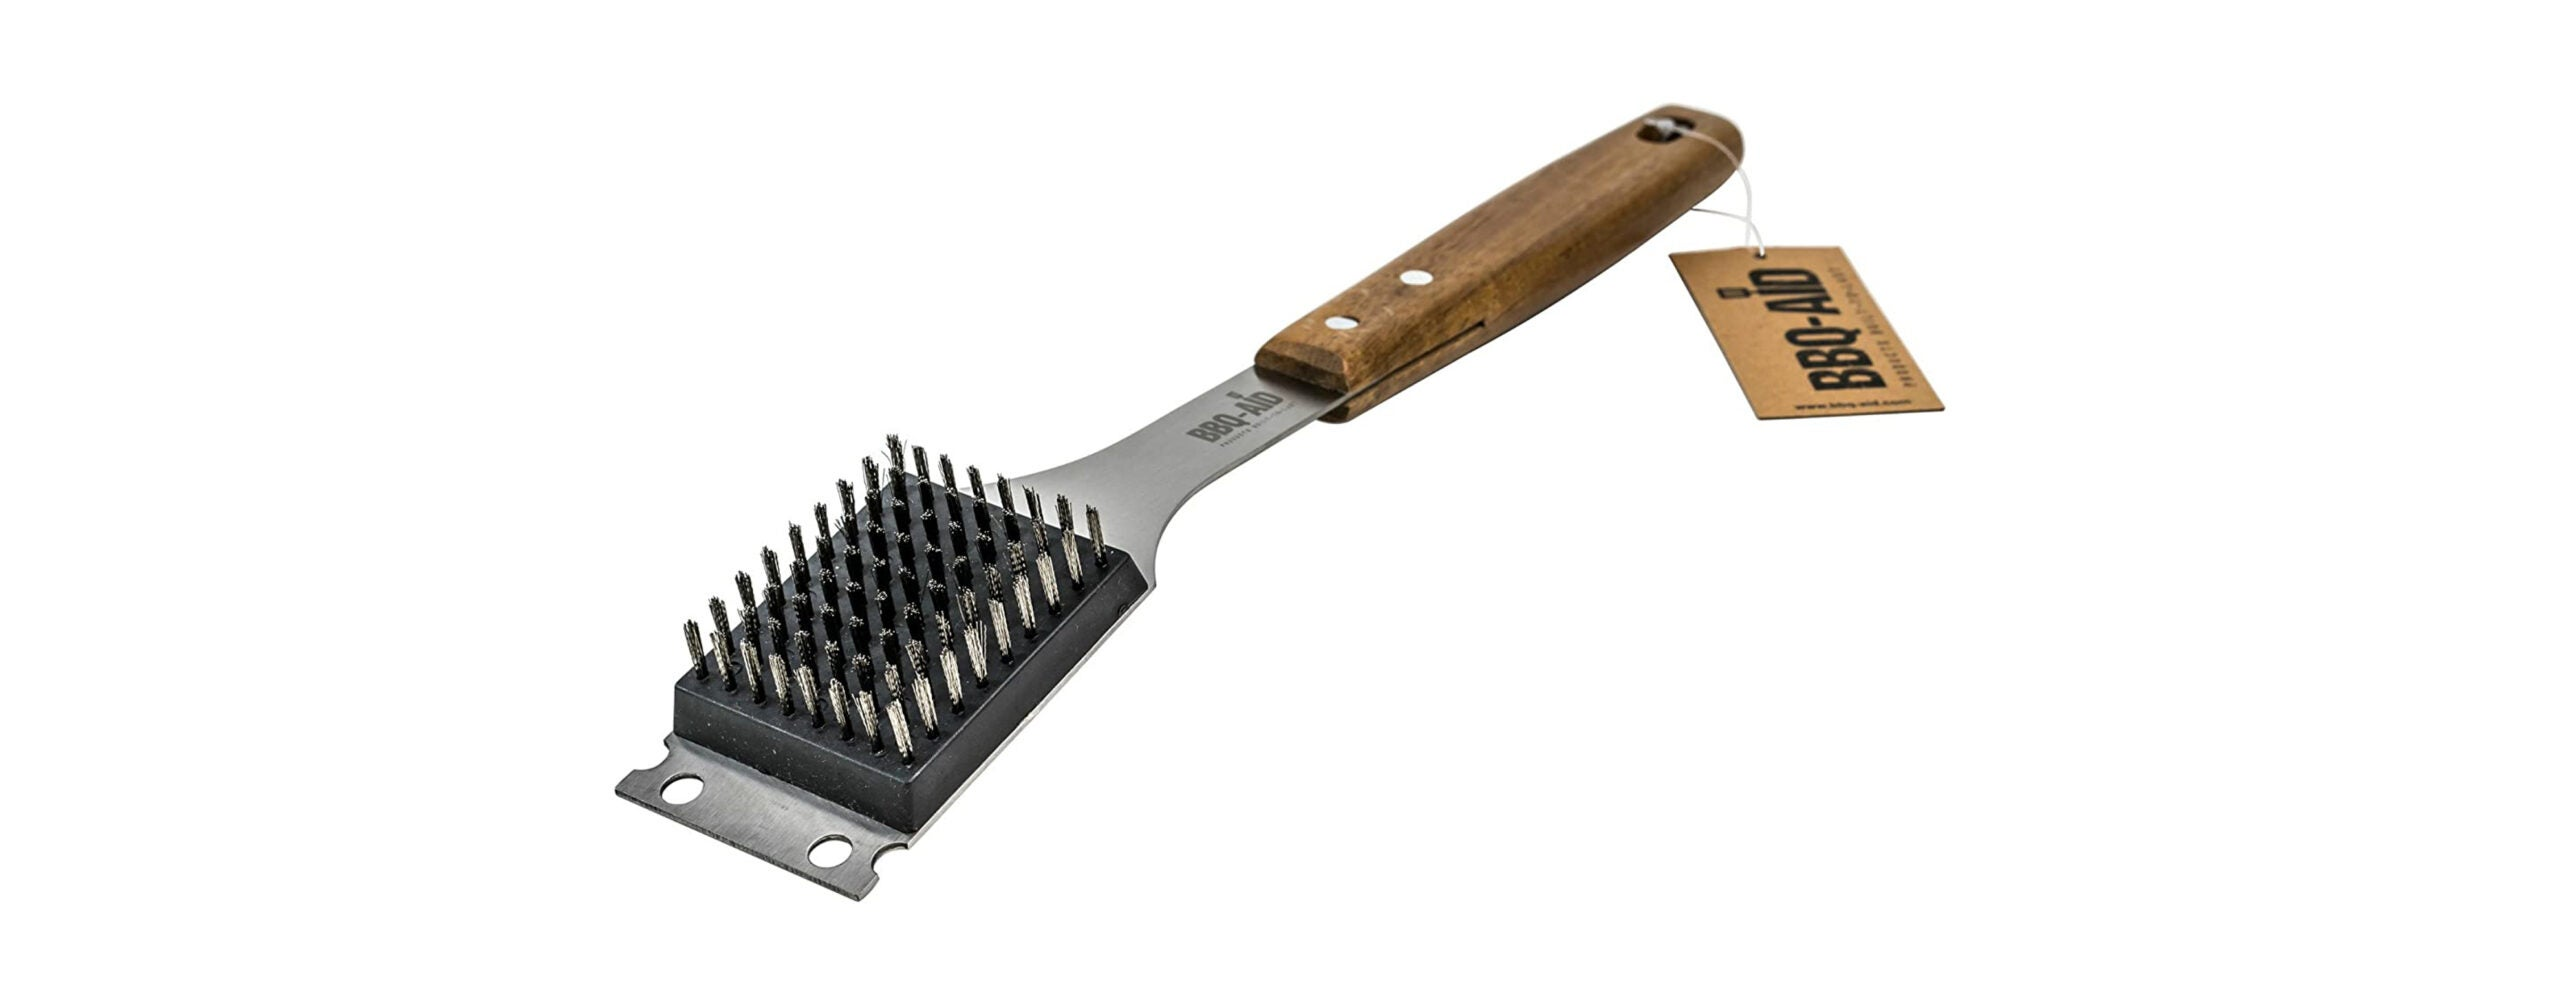 The Best Grill Brushes (Review & Buying Guide) of 2021